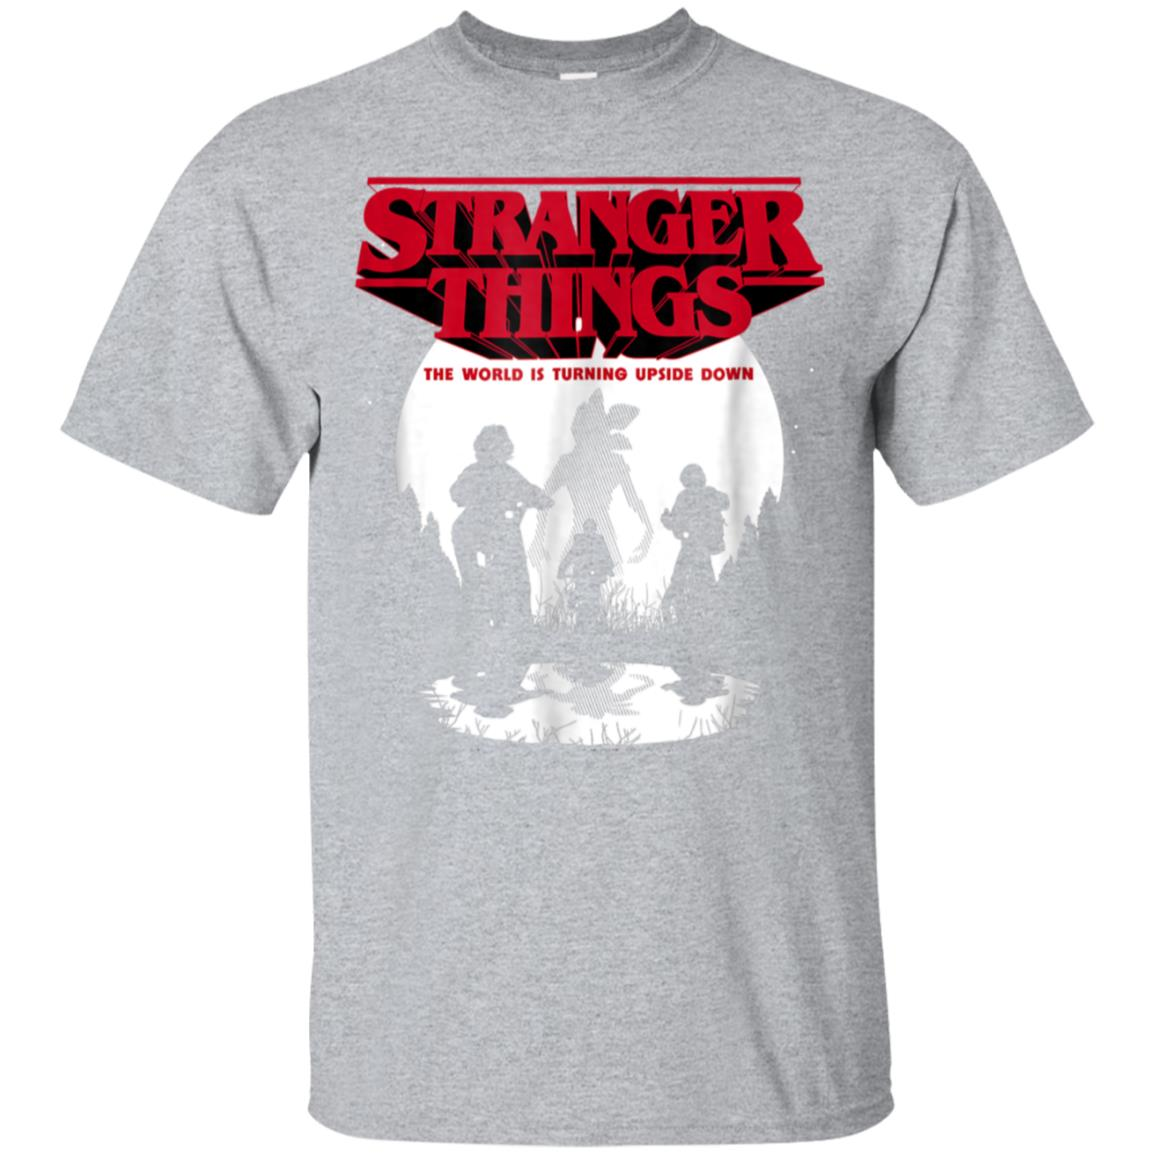 Netflix Stranger Things Upside Down T-shirt 99promocode